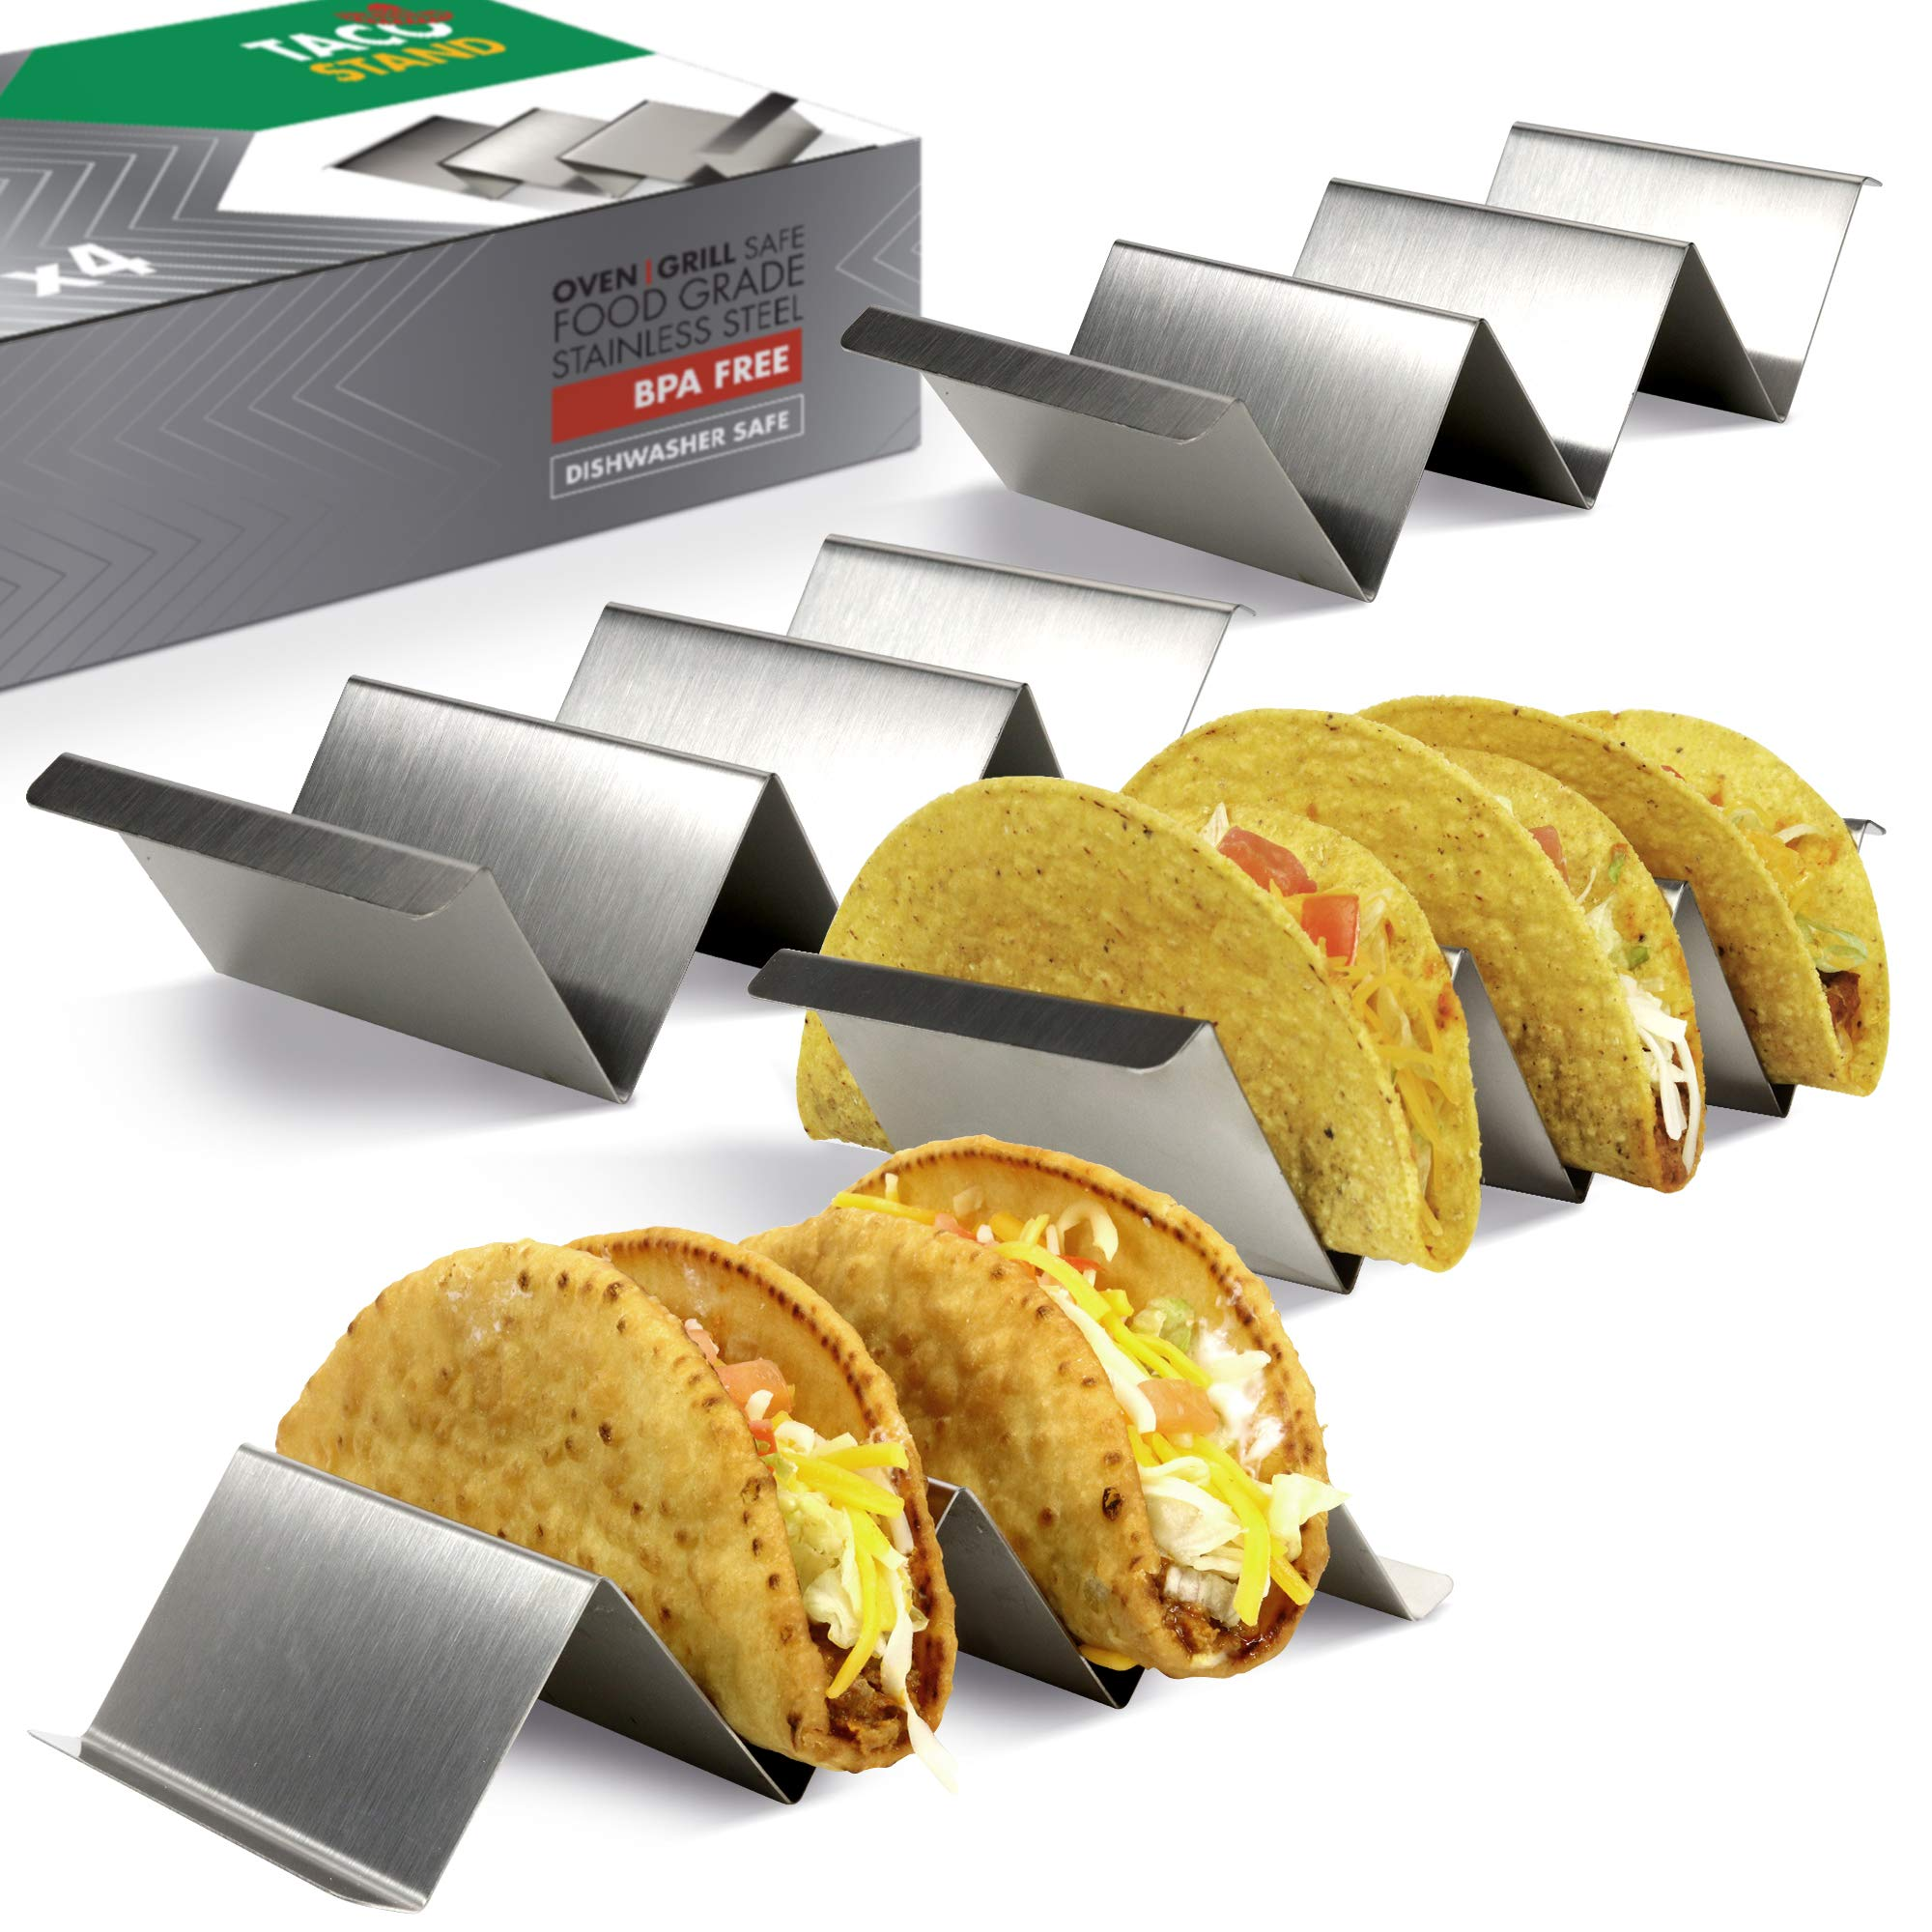 Taco Holder Set of 4 - Stainless Steel Taco Stand - Dishwasher & Oven Save - Easy To Fill Taco Rack And Perfect To Keep Your Delicious Tacos by KIBAGA